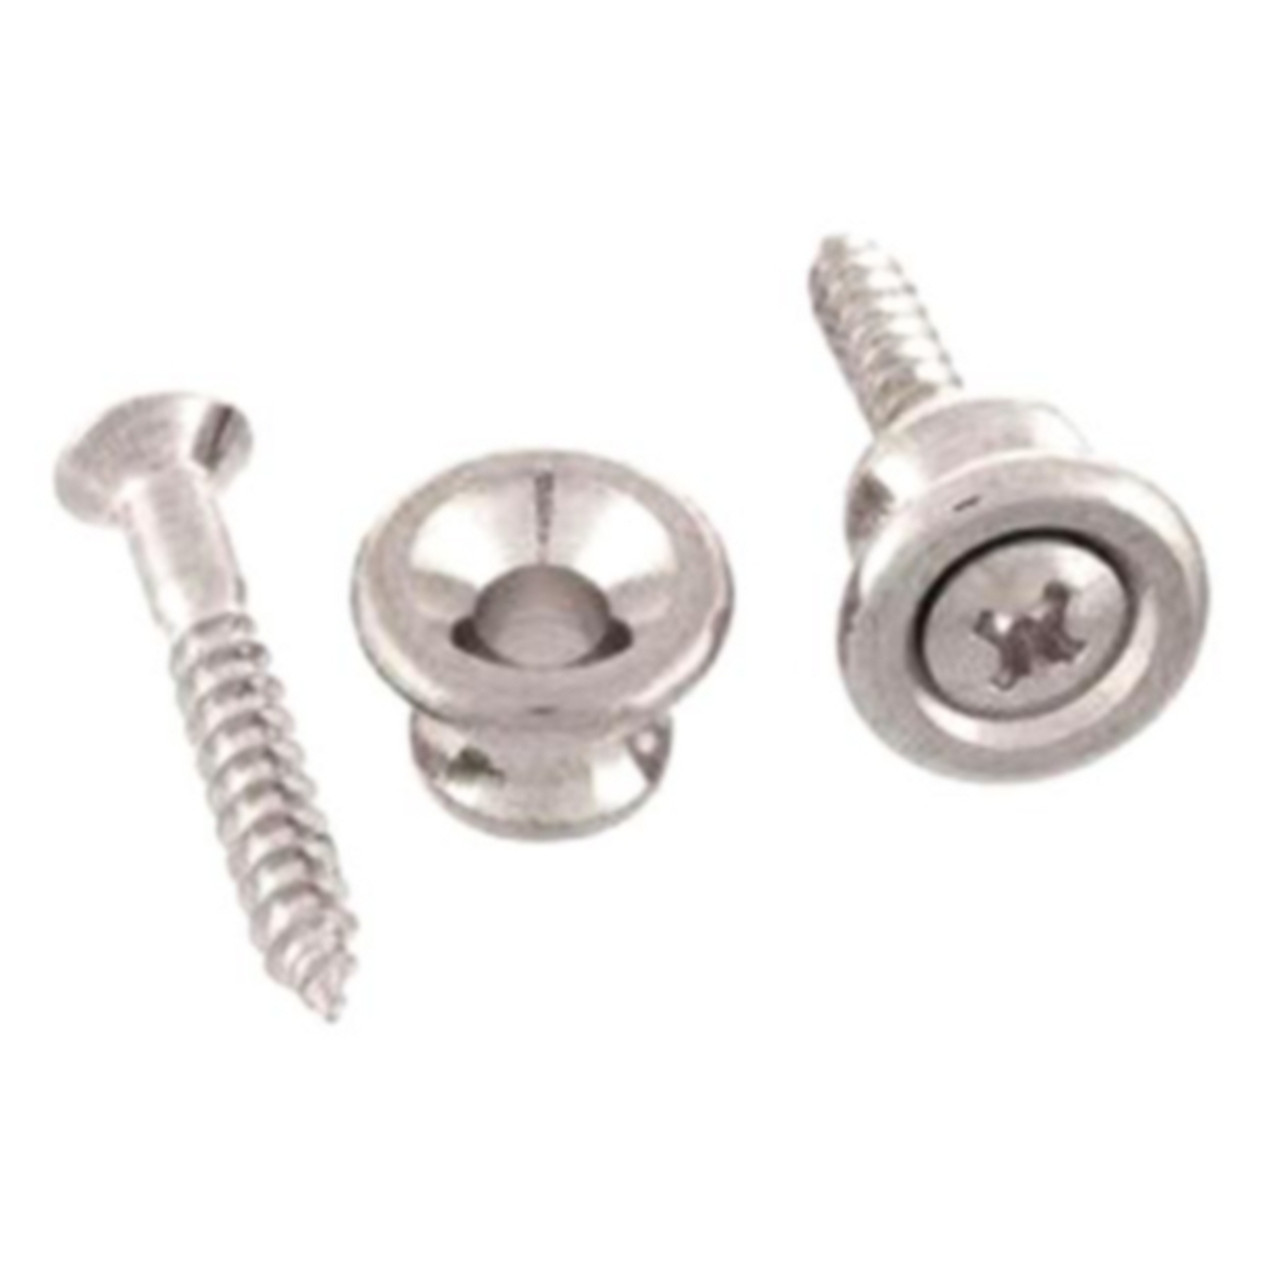 Gibson Style Strap Button Set (2) Nickel